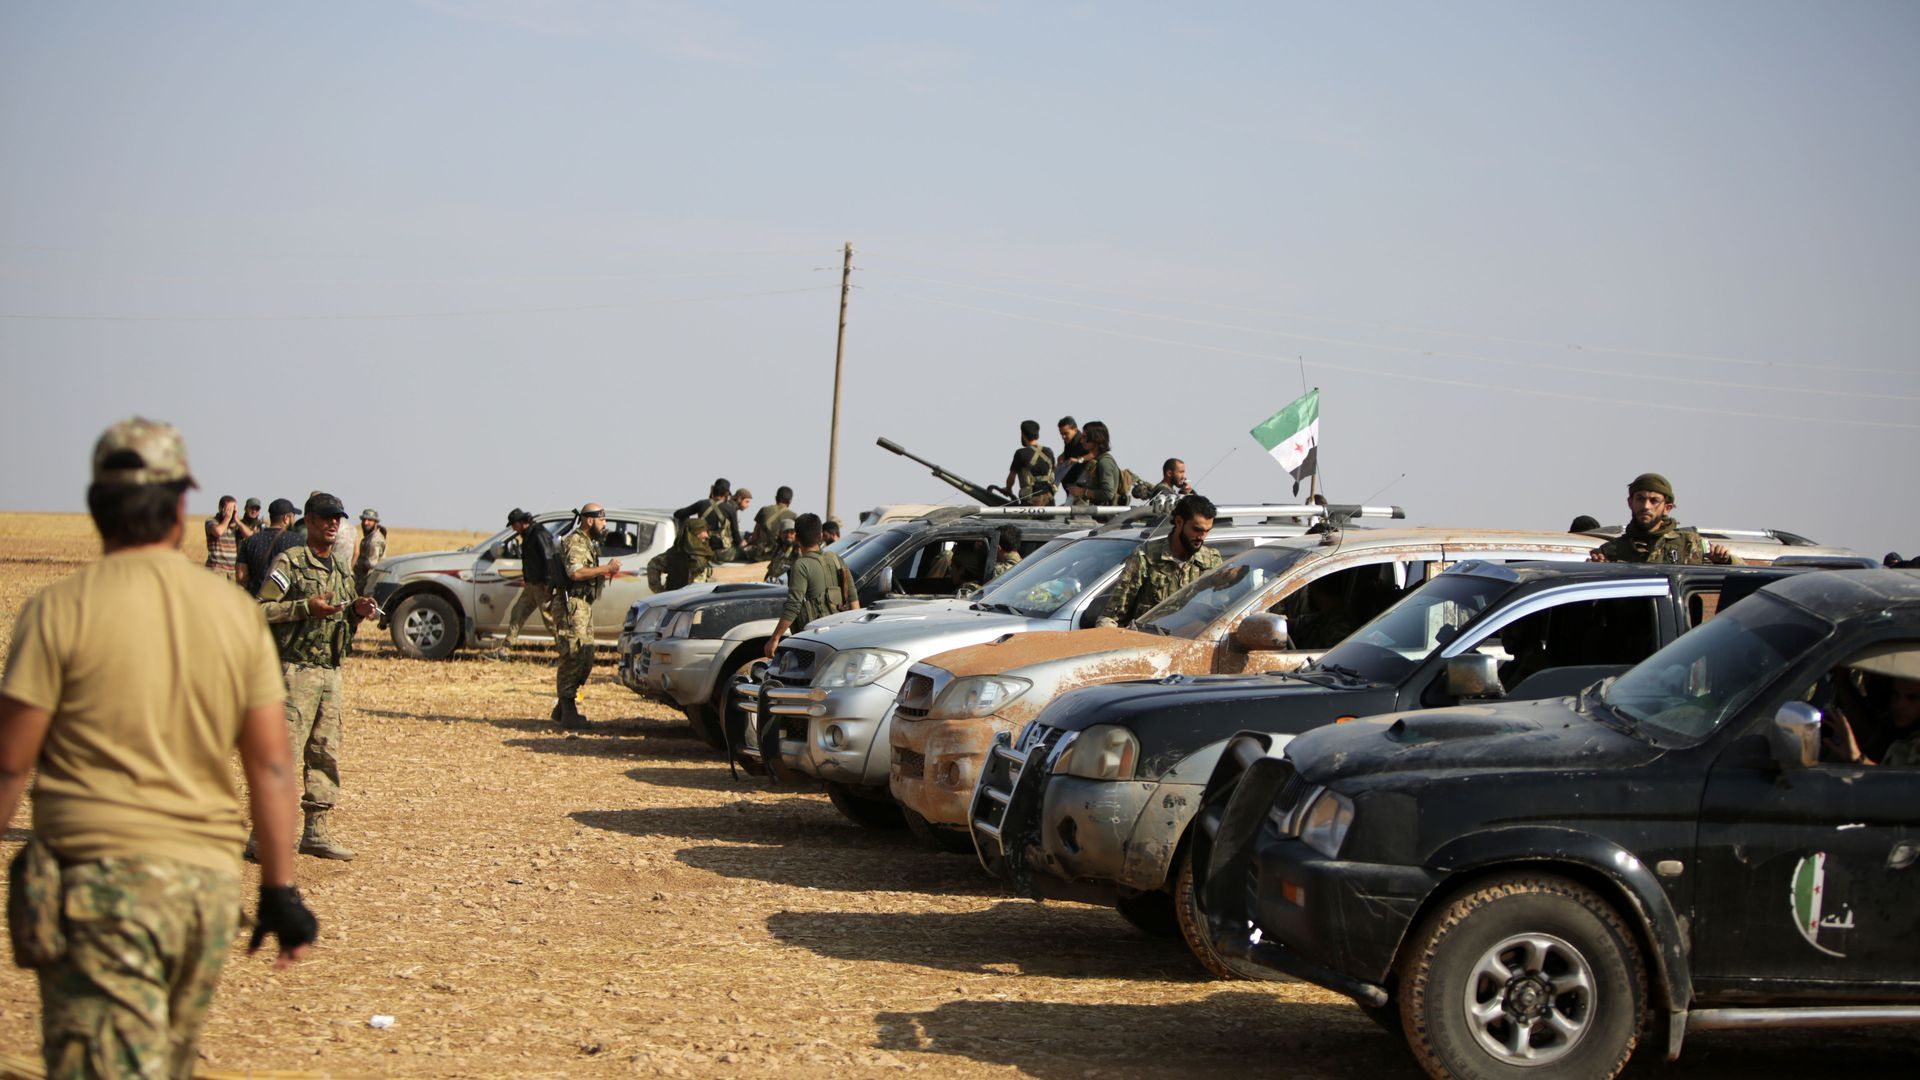 fighters in and around a small fleet of cars and trucks